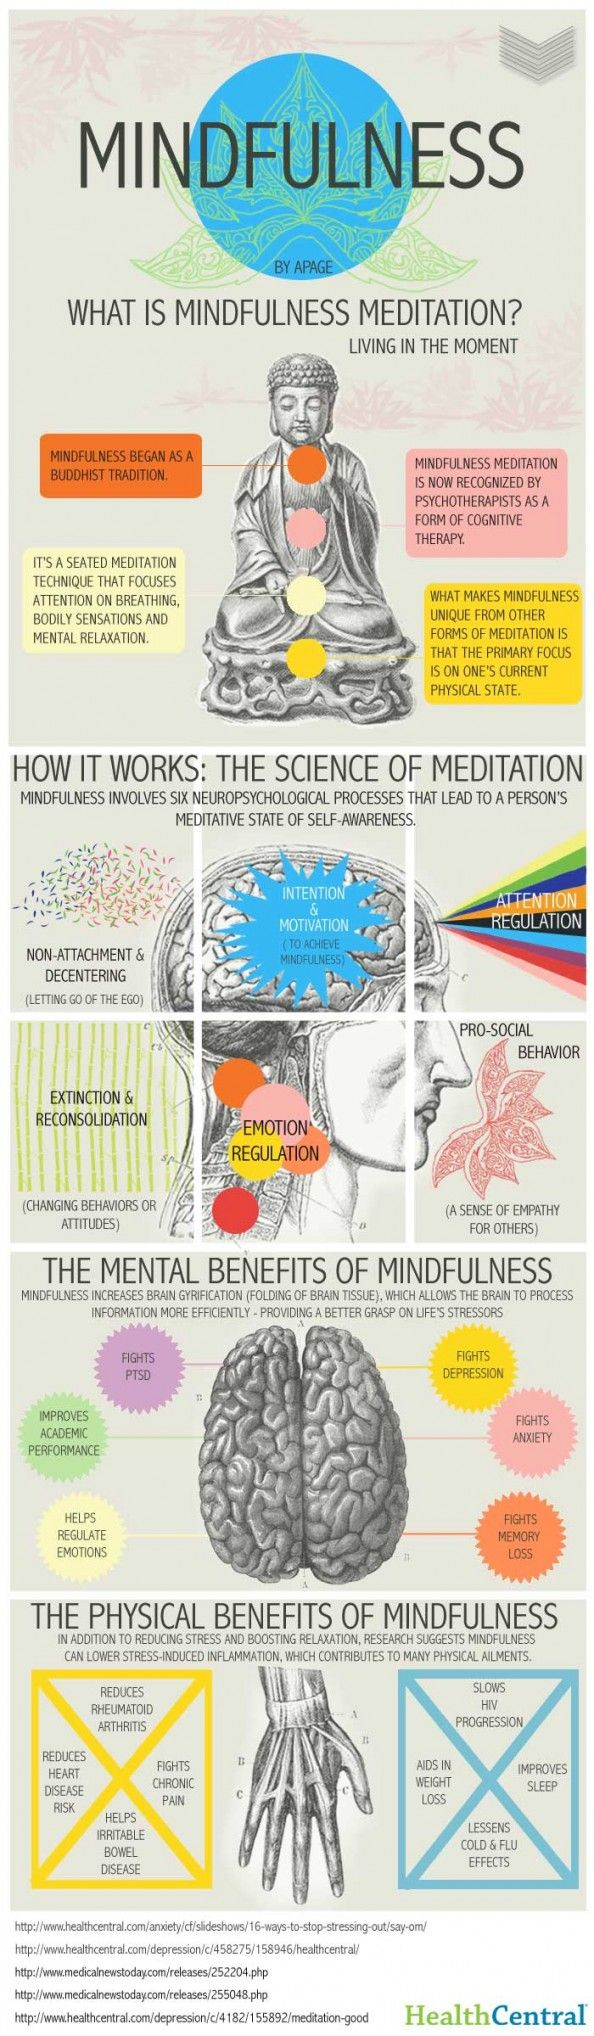 Clients often ask me about meditation - it's so good for us, mentally and emotionally, and it can be really peaceful and lovely to give yourself the space in your life to be still and contemplative. Here's some good basic information on mindfulness meditation. - Abba